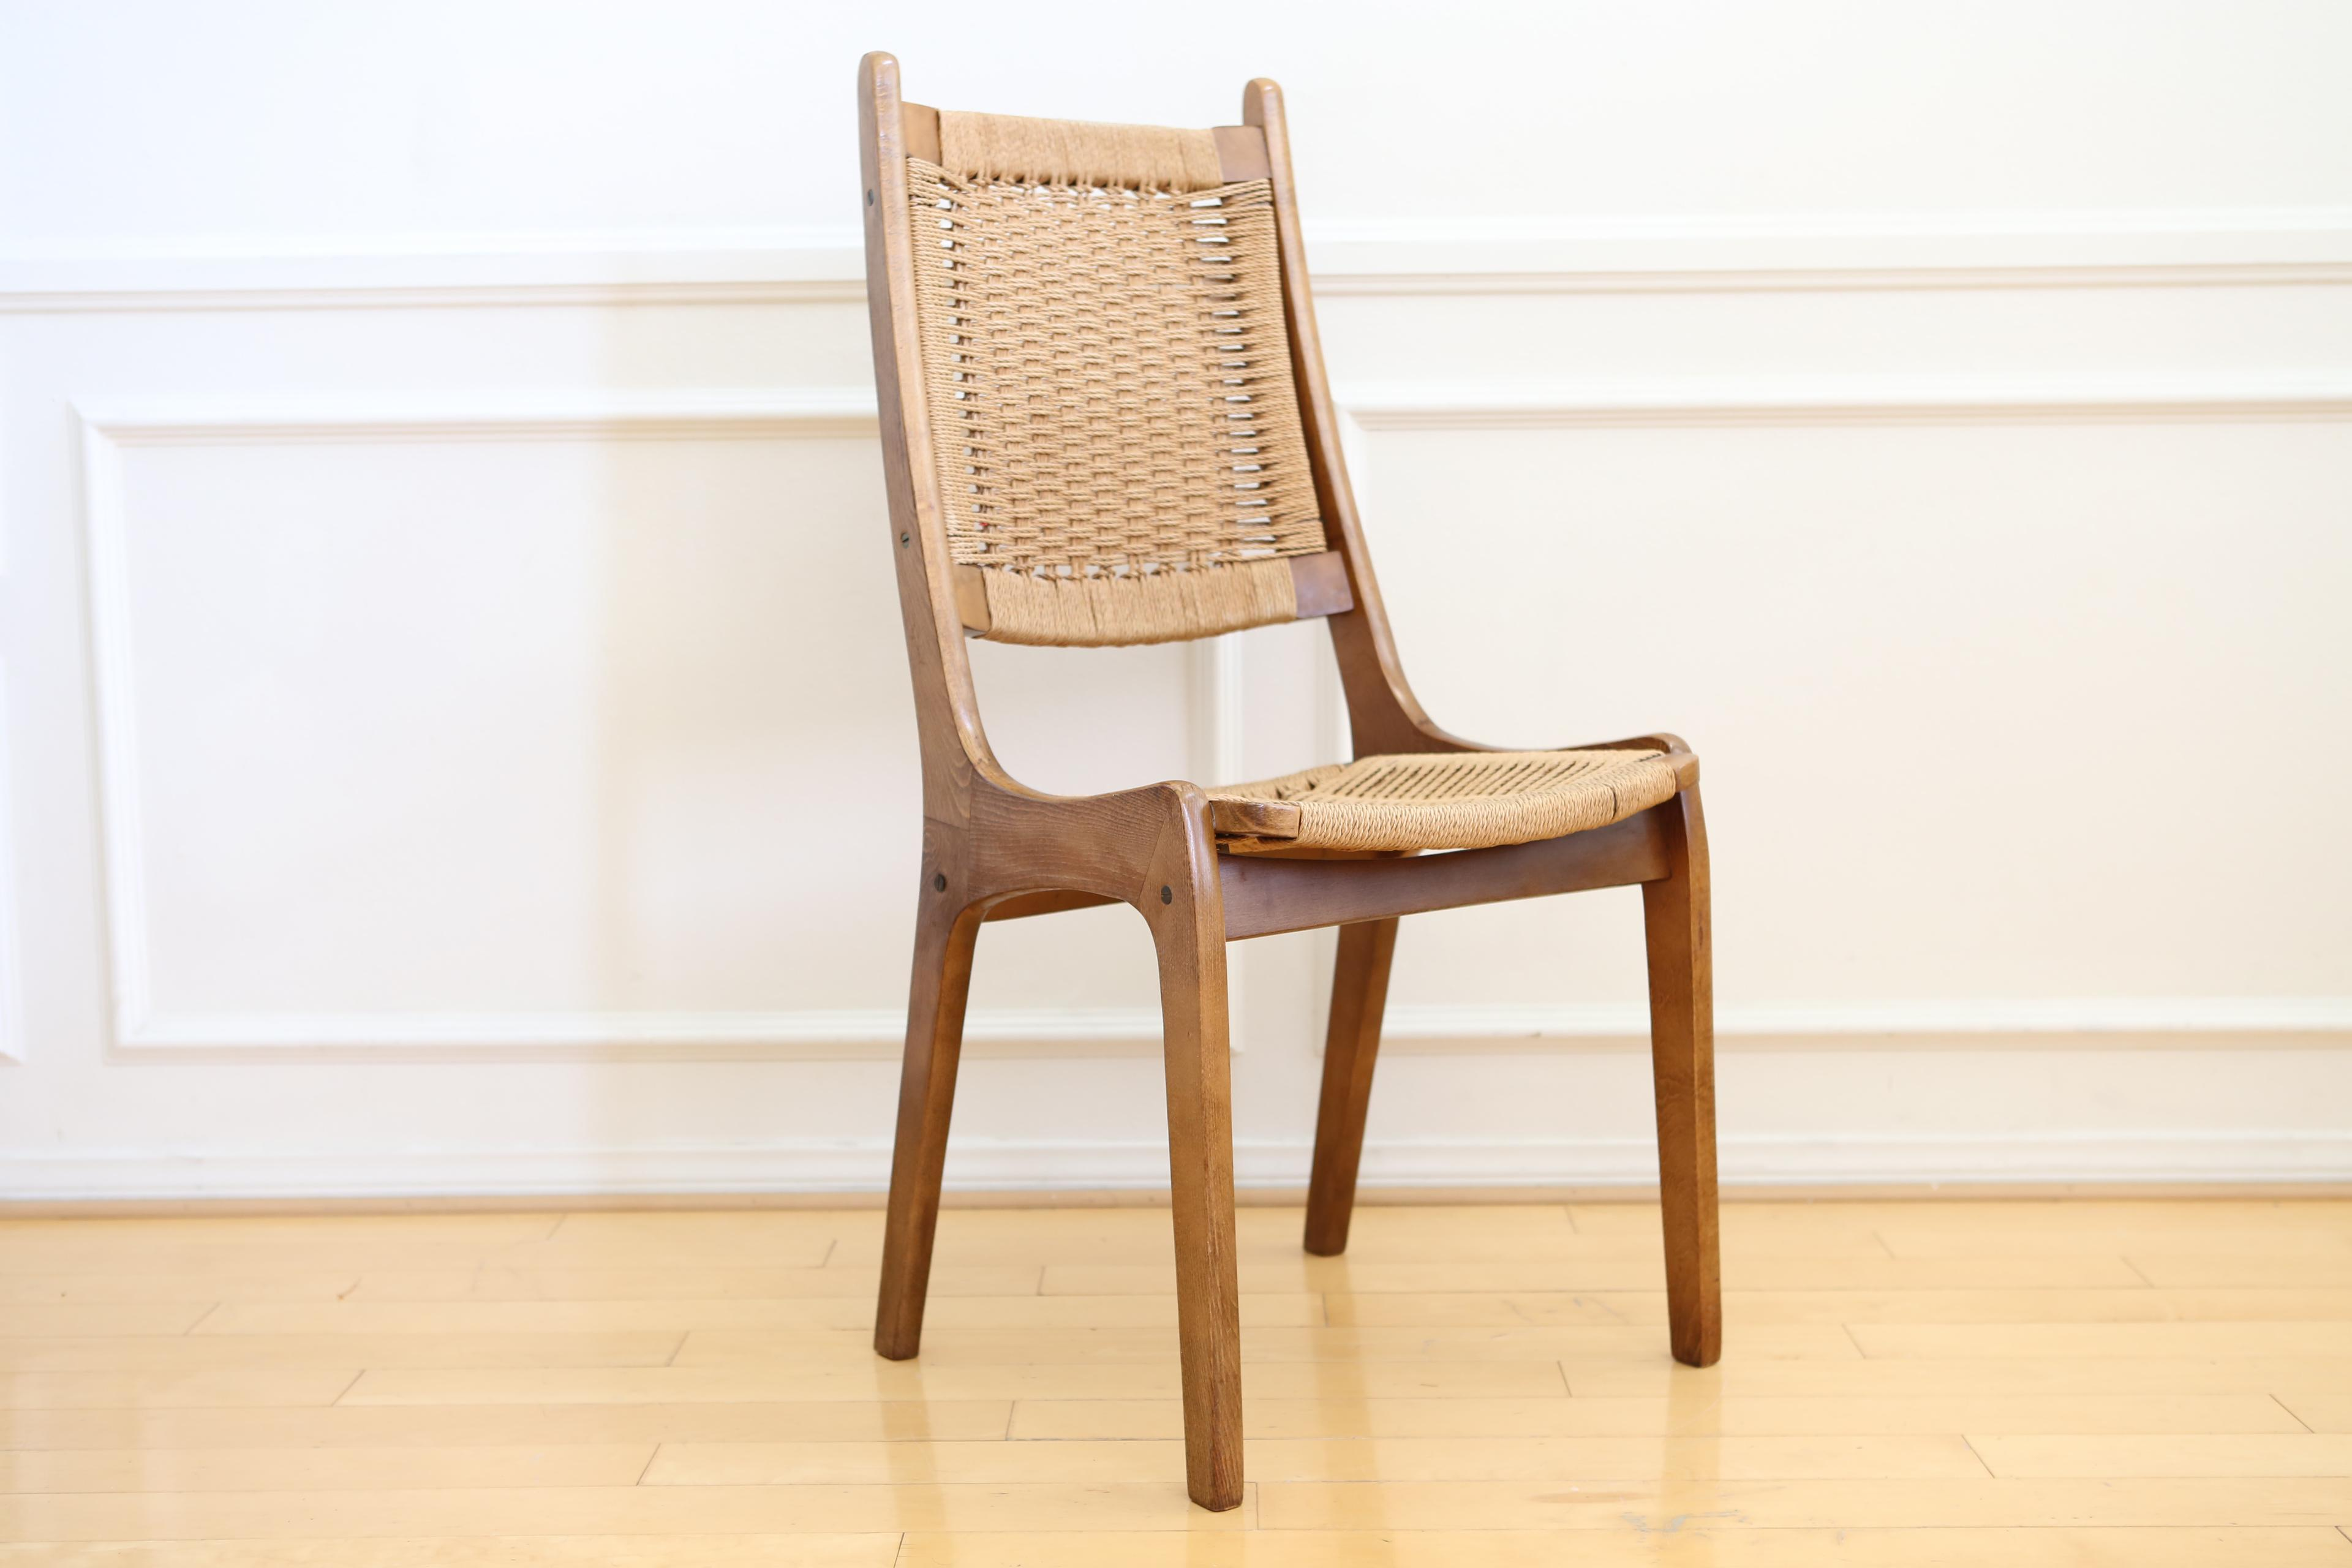 This Is A Beautiful Mid Century Modern Chair In Excellent Condition, No  Issues At All